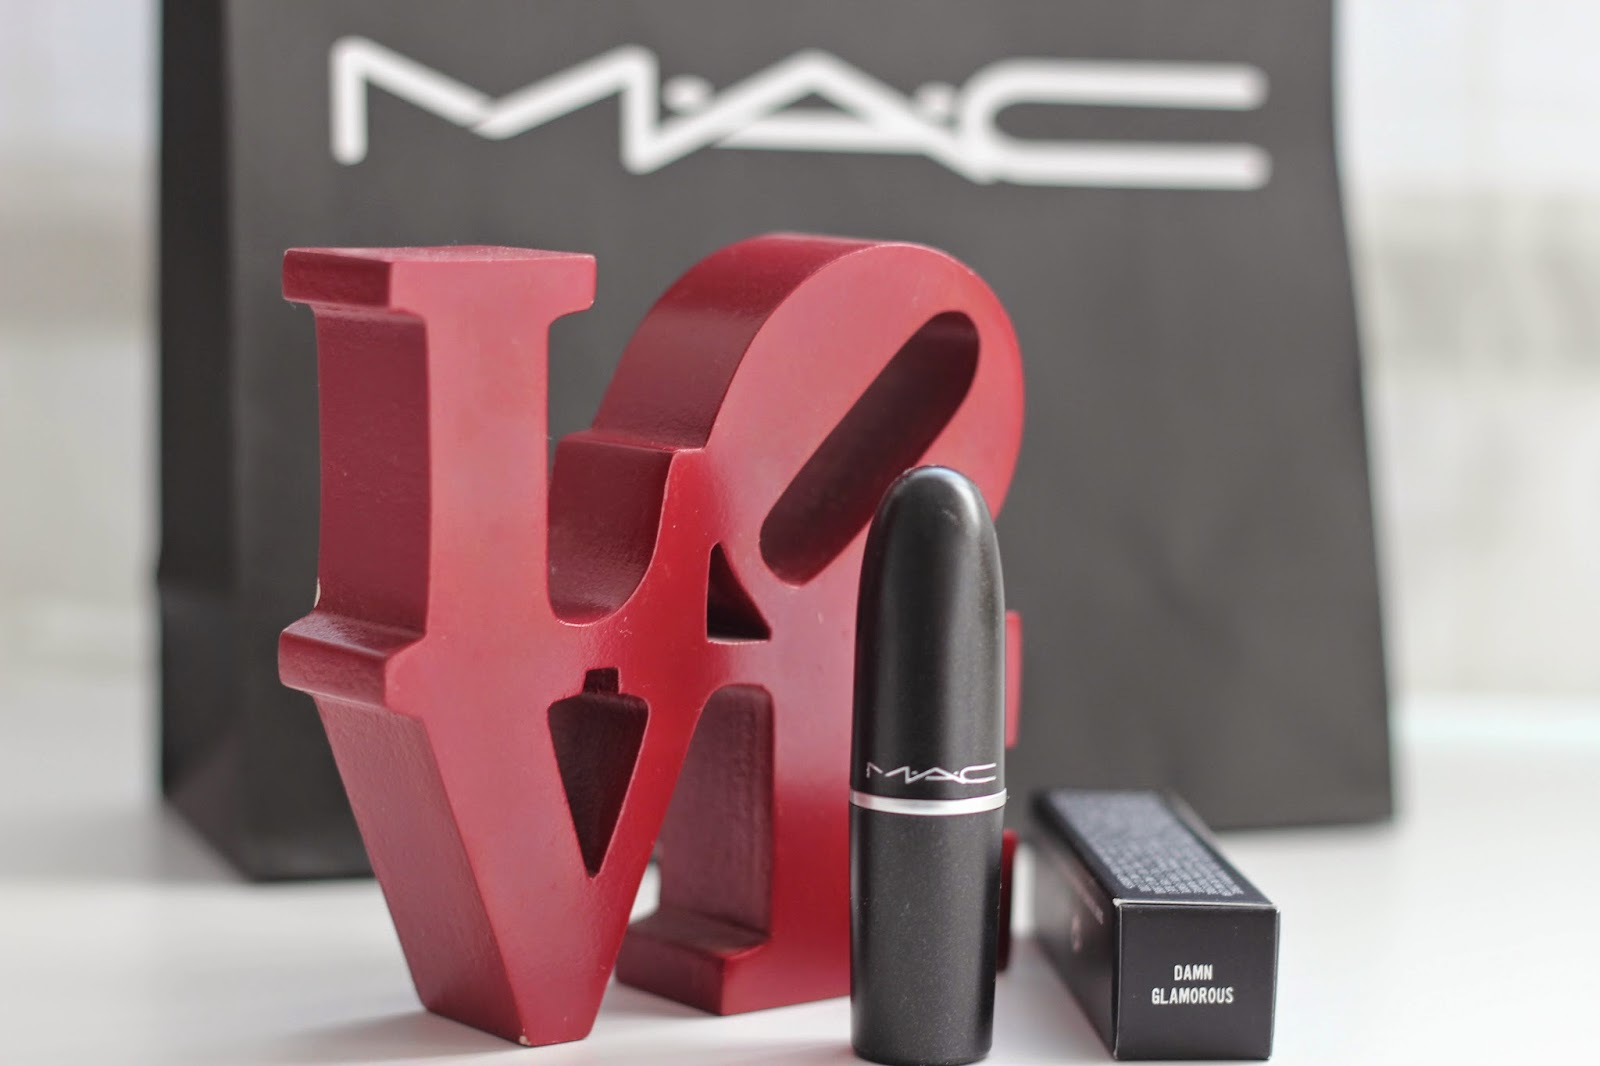 photo-mac-the_matte_lips-red_lipstick-Damn_glamorous